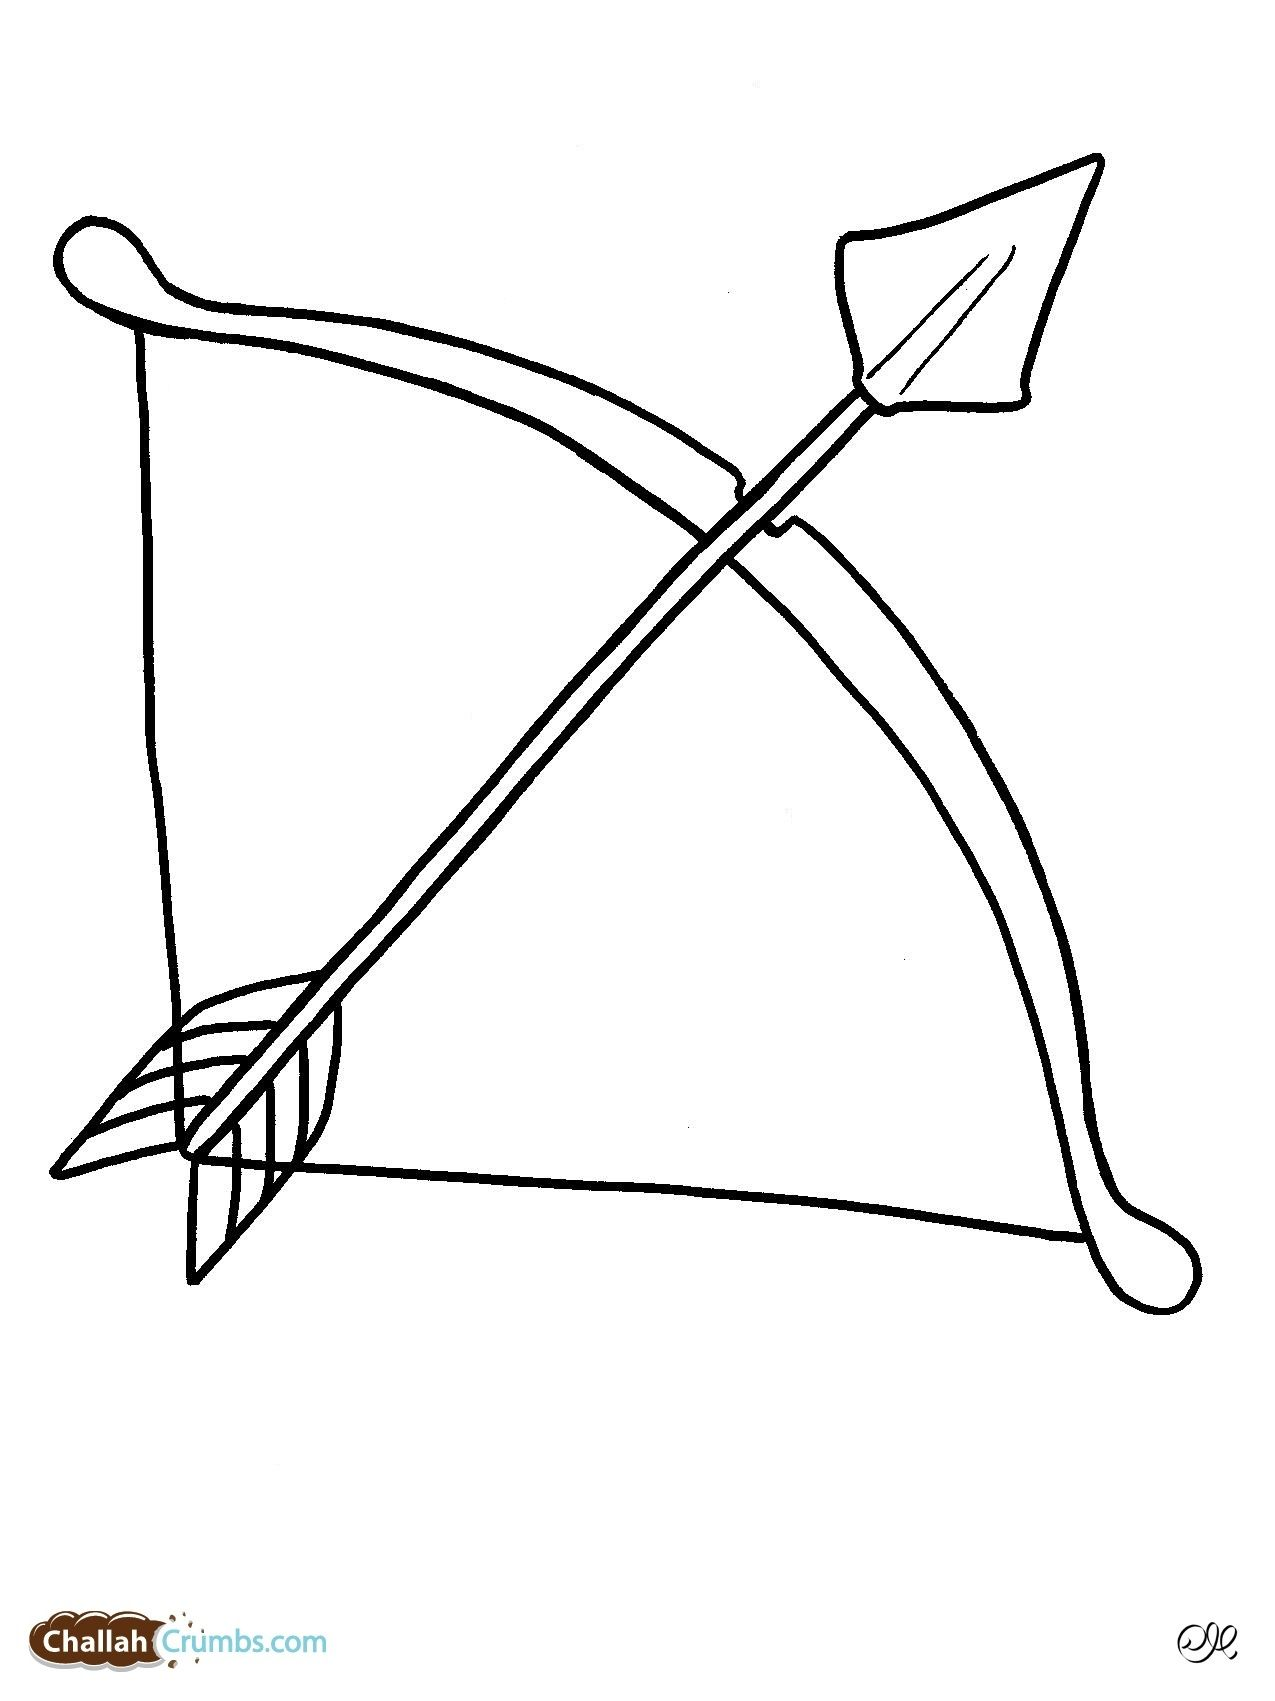 Minecraft Bow And Arrow Coloring Pages Download